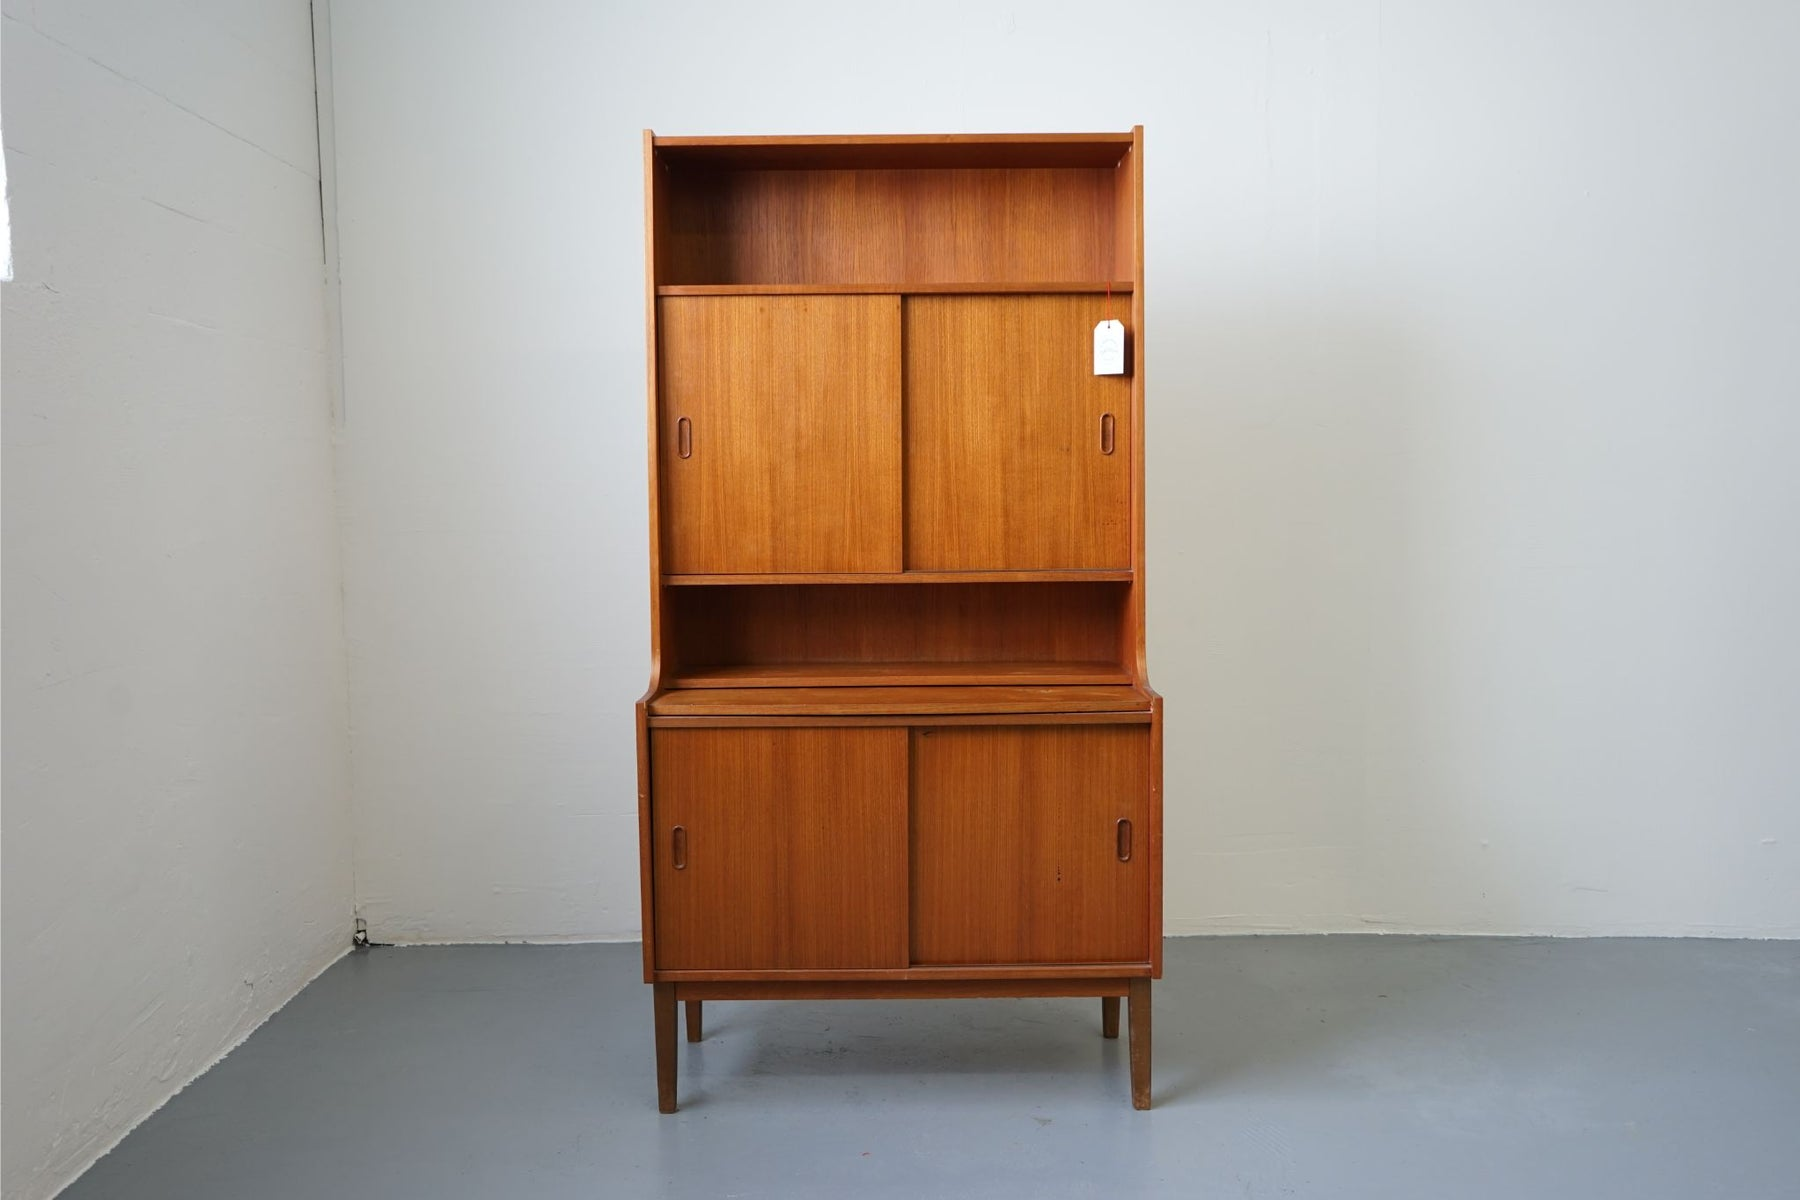 A Mid-Century Bookcase Made With Teak - (D408)